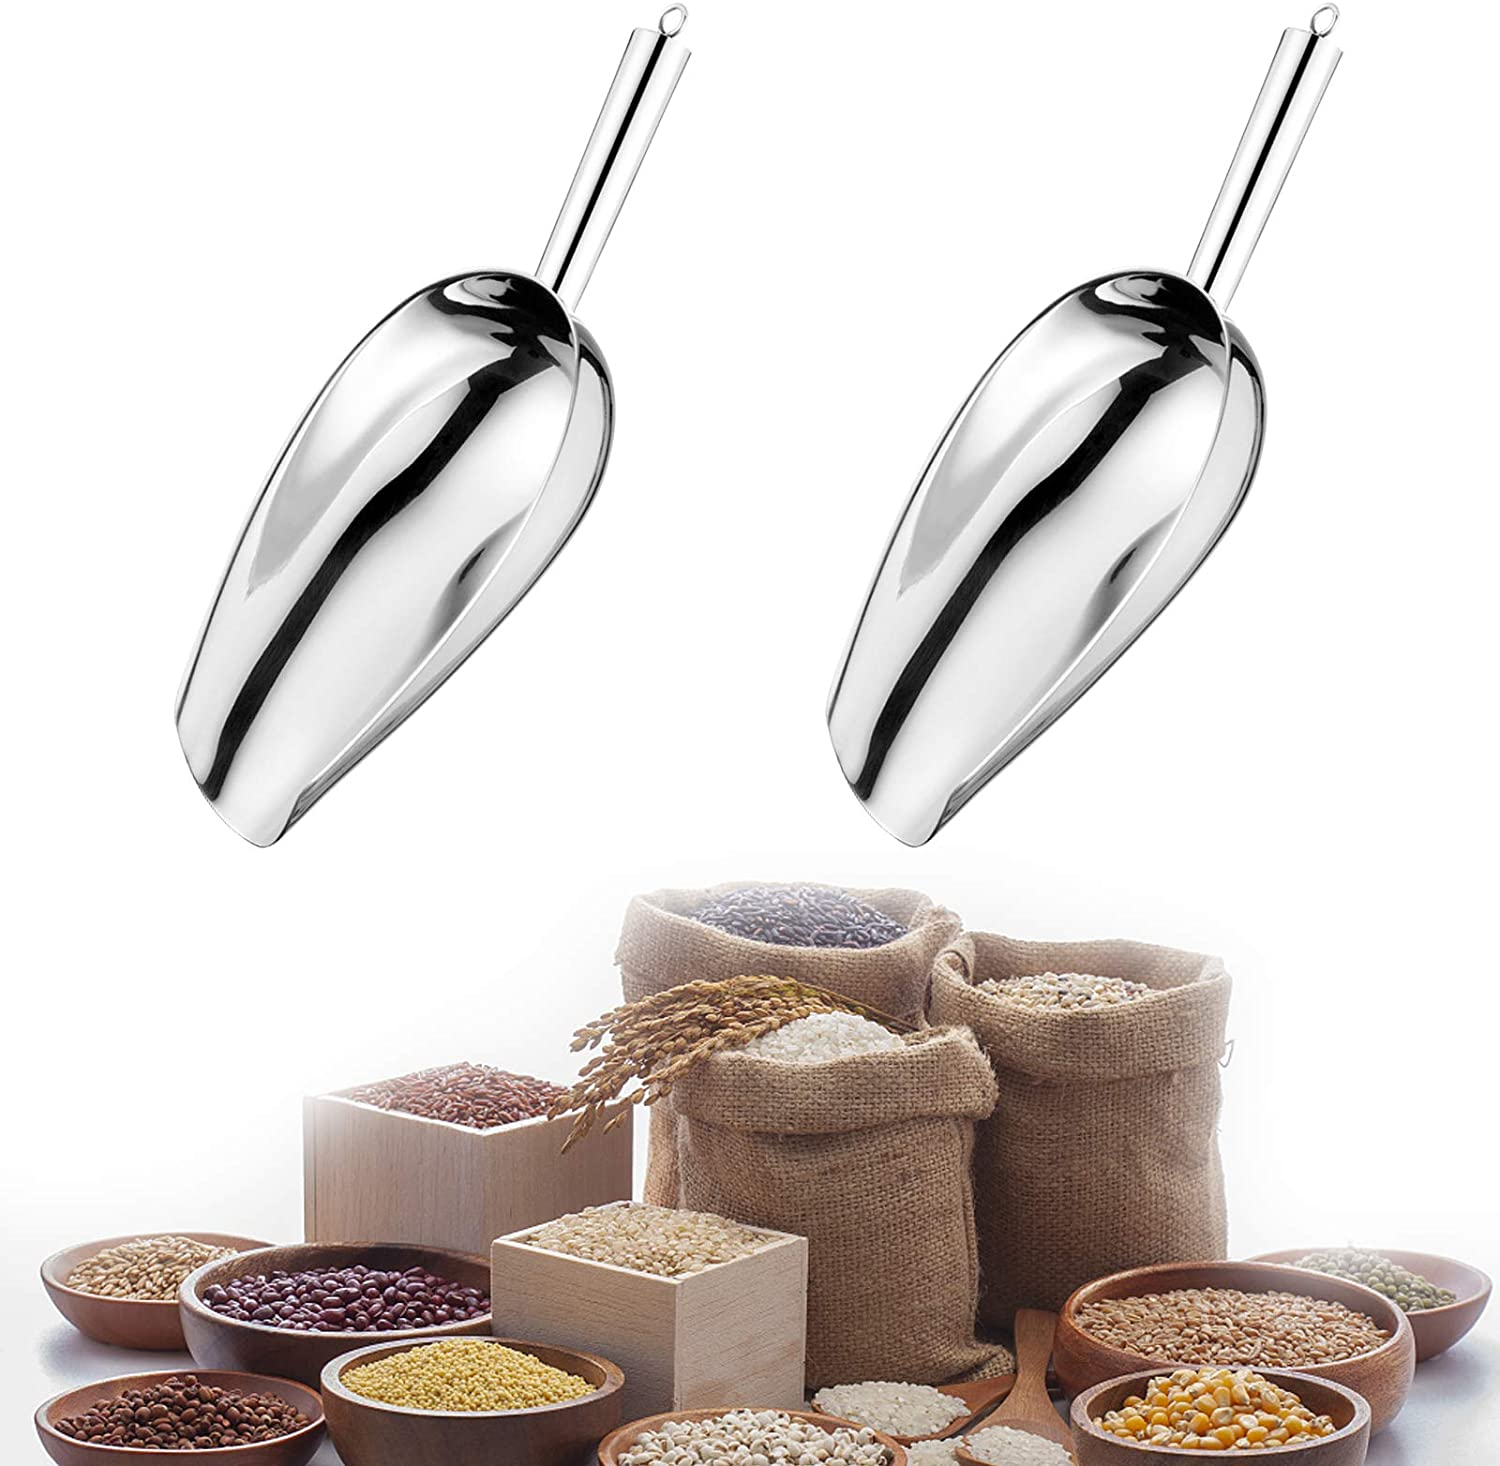 3 Ounce Ice Scoop Set of 2, Stainless Steel Pet Food Scoop Ice Scooper for Freezer, Multifunctional Small Scoops, Metal Utility Scoops for Canisters, Baking, Kitchen Pantry and Dishwasher Safe